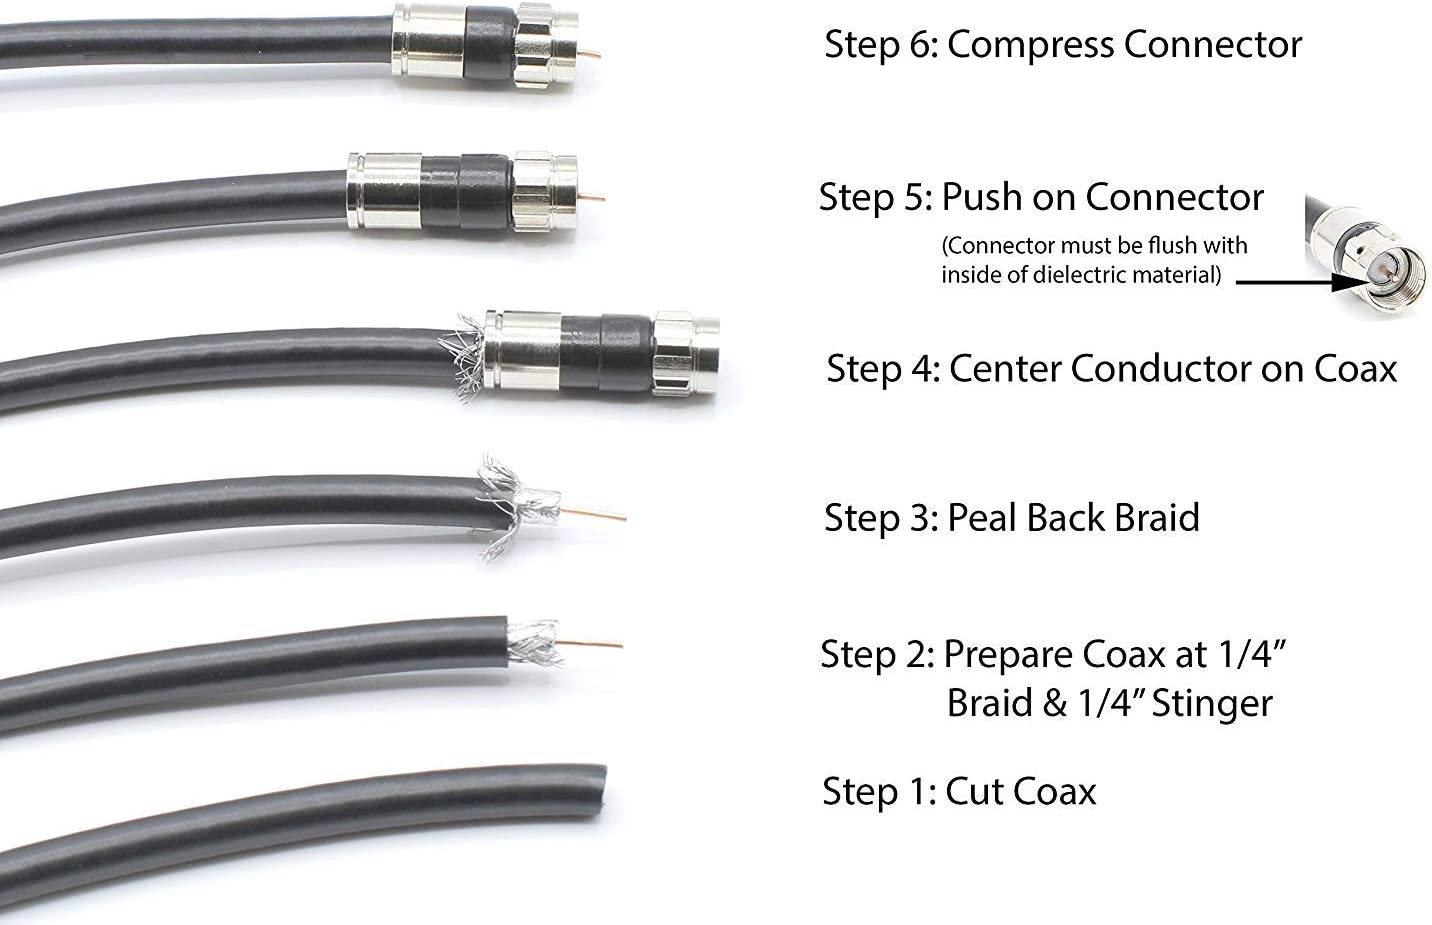 Coaxial Cable Compression Fitting THE CIMPLE CO with Weather Seal O Ring and Water Tight Grip 4 Pack for RG11 Coax Cable